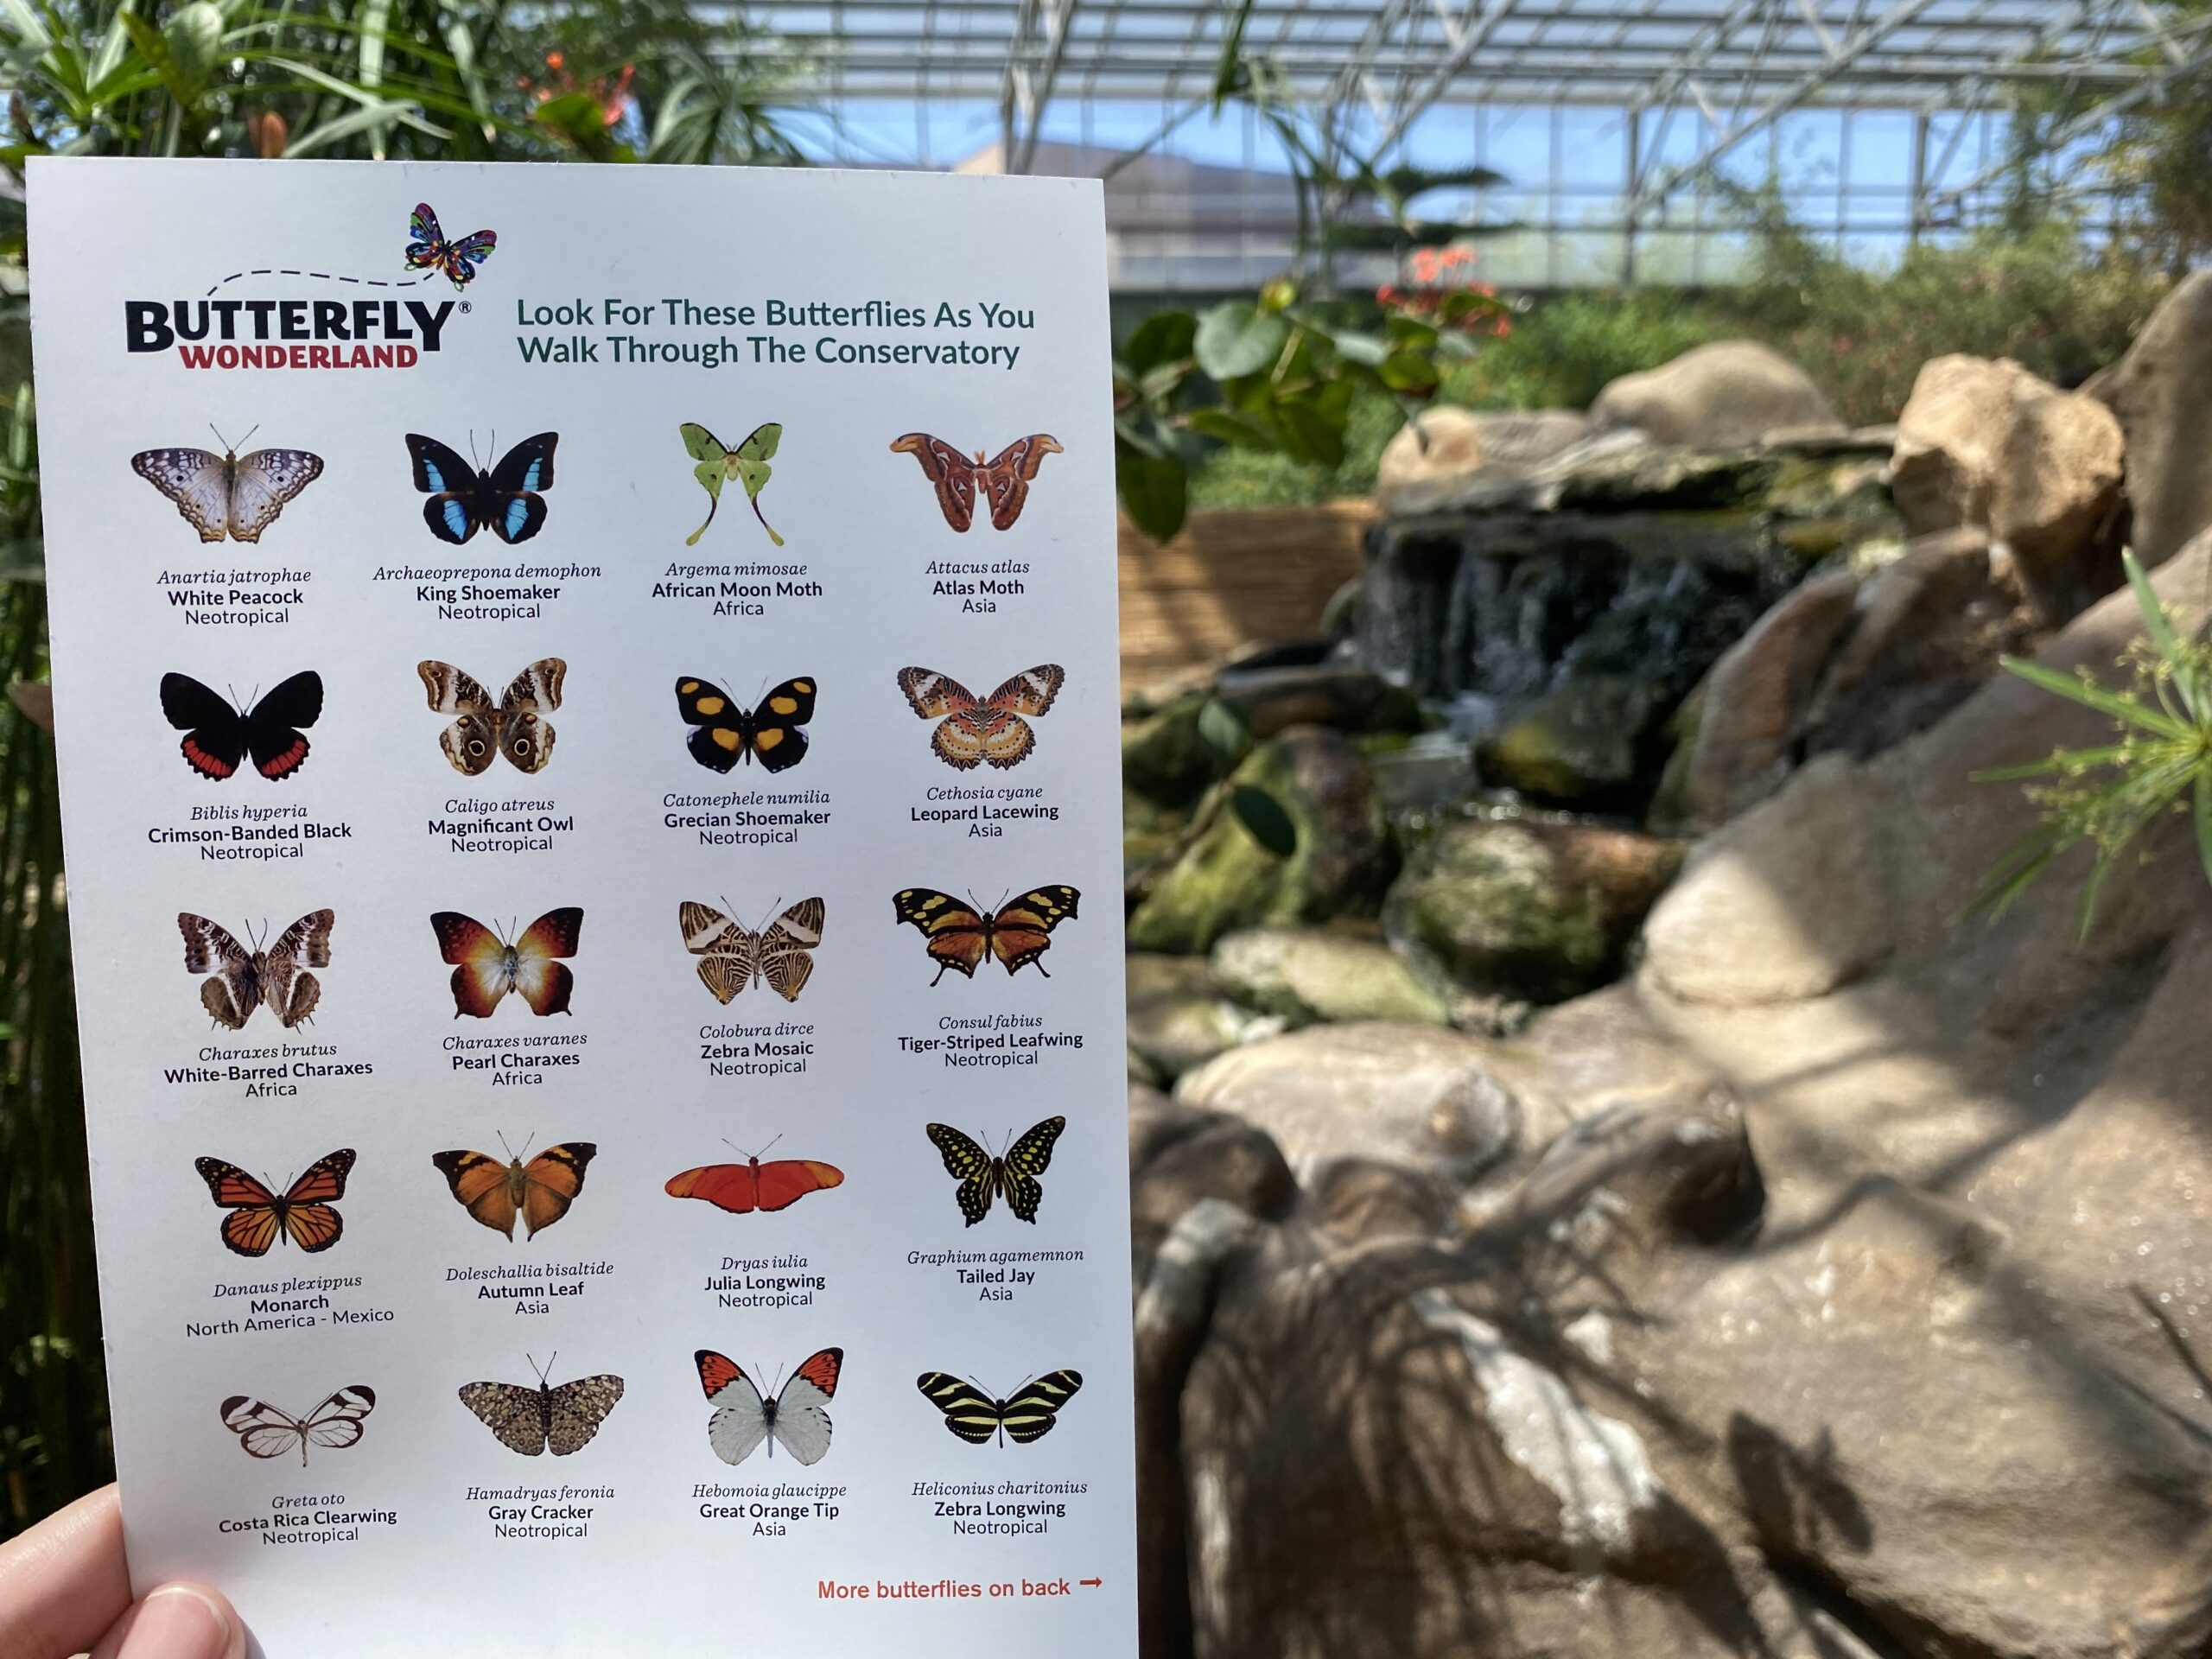 Looking for butterflies in the Butterfly Conservatory at Butterfly Wonderland in Scottsdale